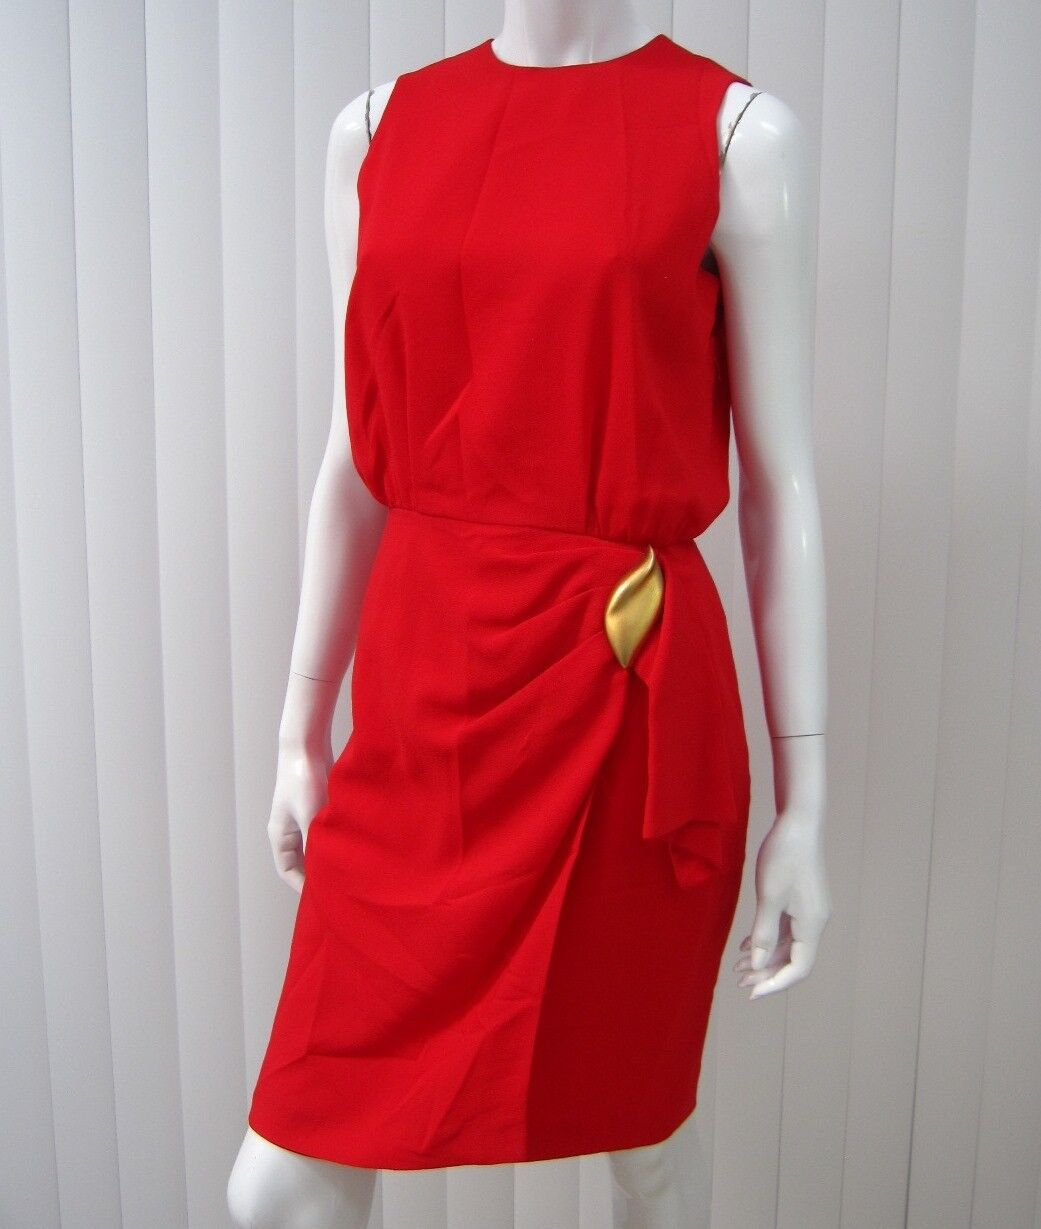 JONES NEW YORK VINTAGE SLEEVELESS DRESS SIZE 4 SOLID RED